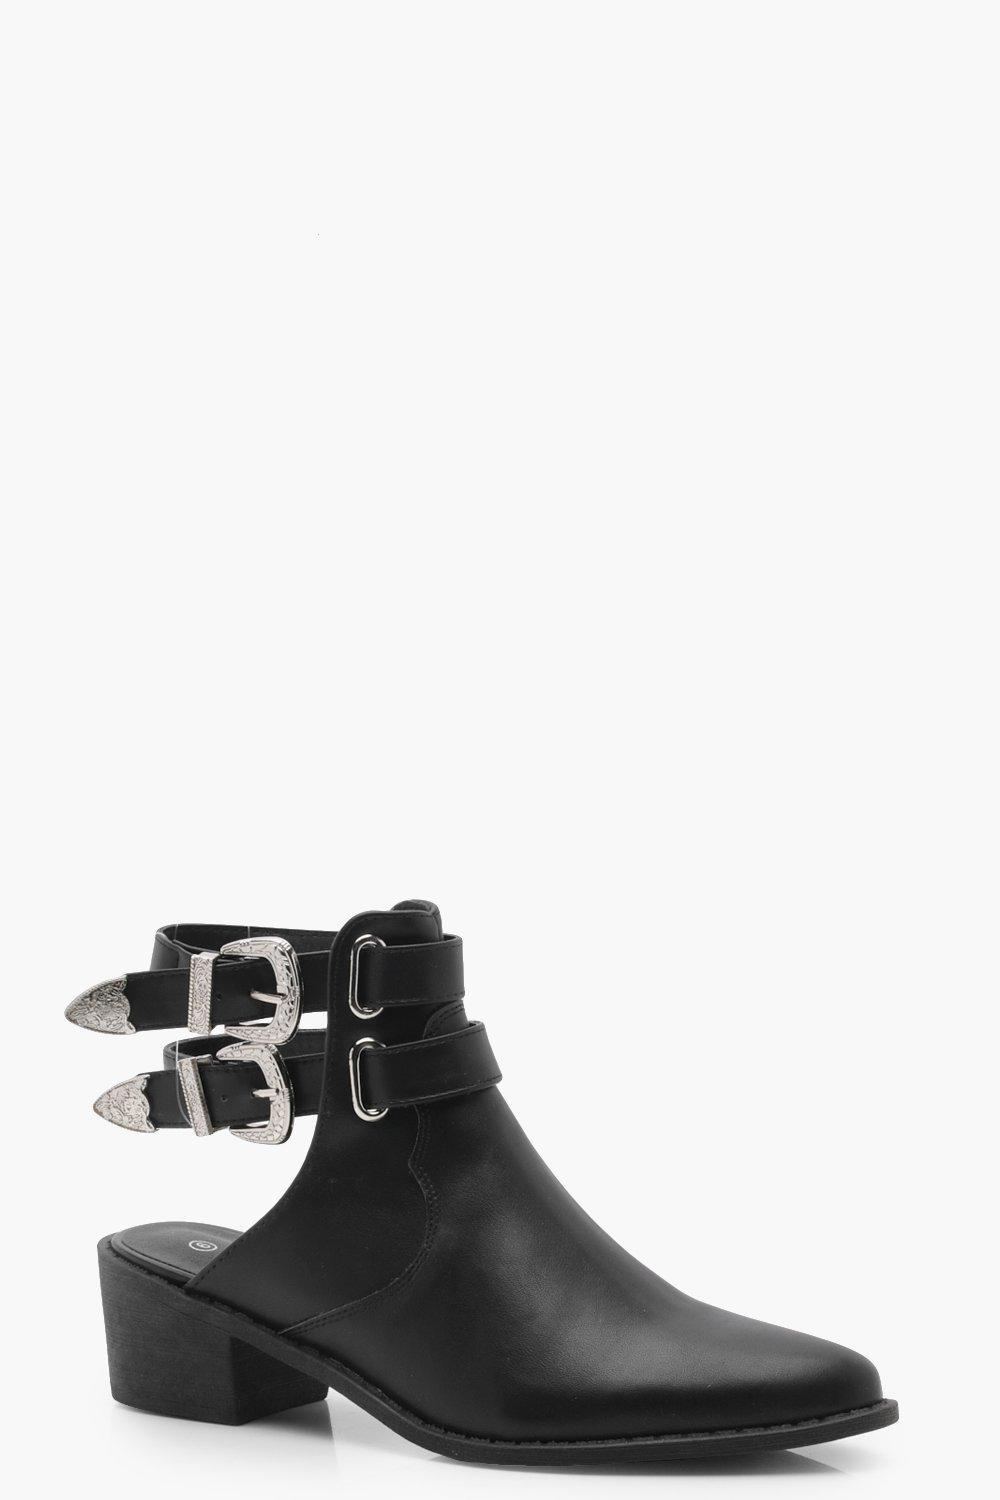 Lyst - Boohoo Western Buckle Open Back Boots in Black 7b87016eeb